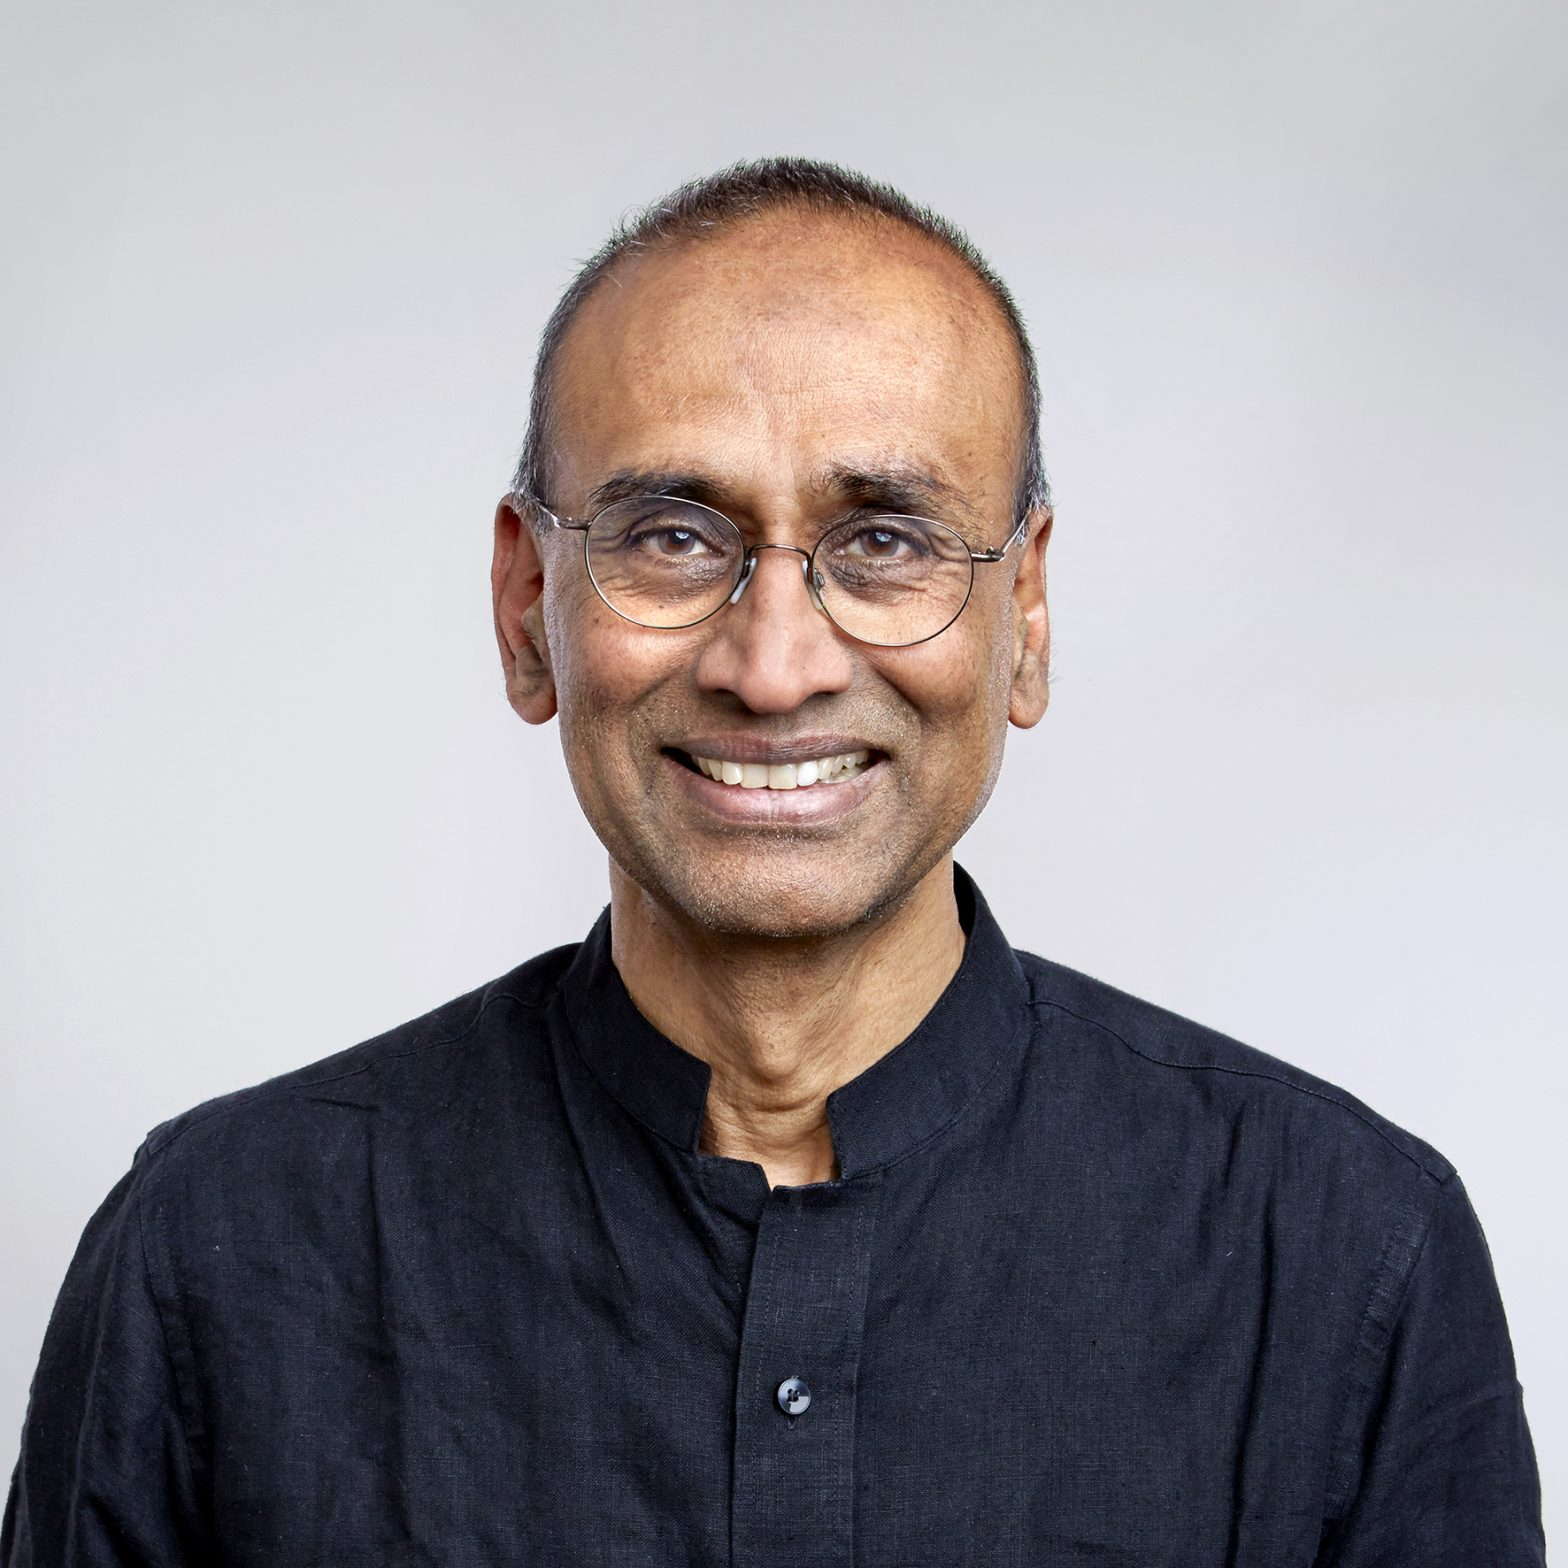 Venki Ramakrishnan, Nobel Prize 2009, President of the Royal Society, about the Ribosome, the Royal Society and the virus crisis. This file is licensed under the Creative Commons Attribution-Share Alike 3.0 Unported license. Attribution: Royal Society.